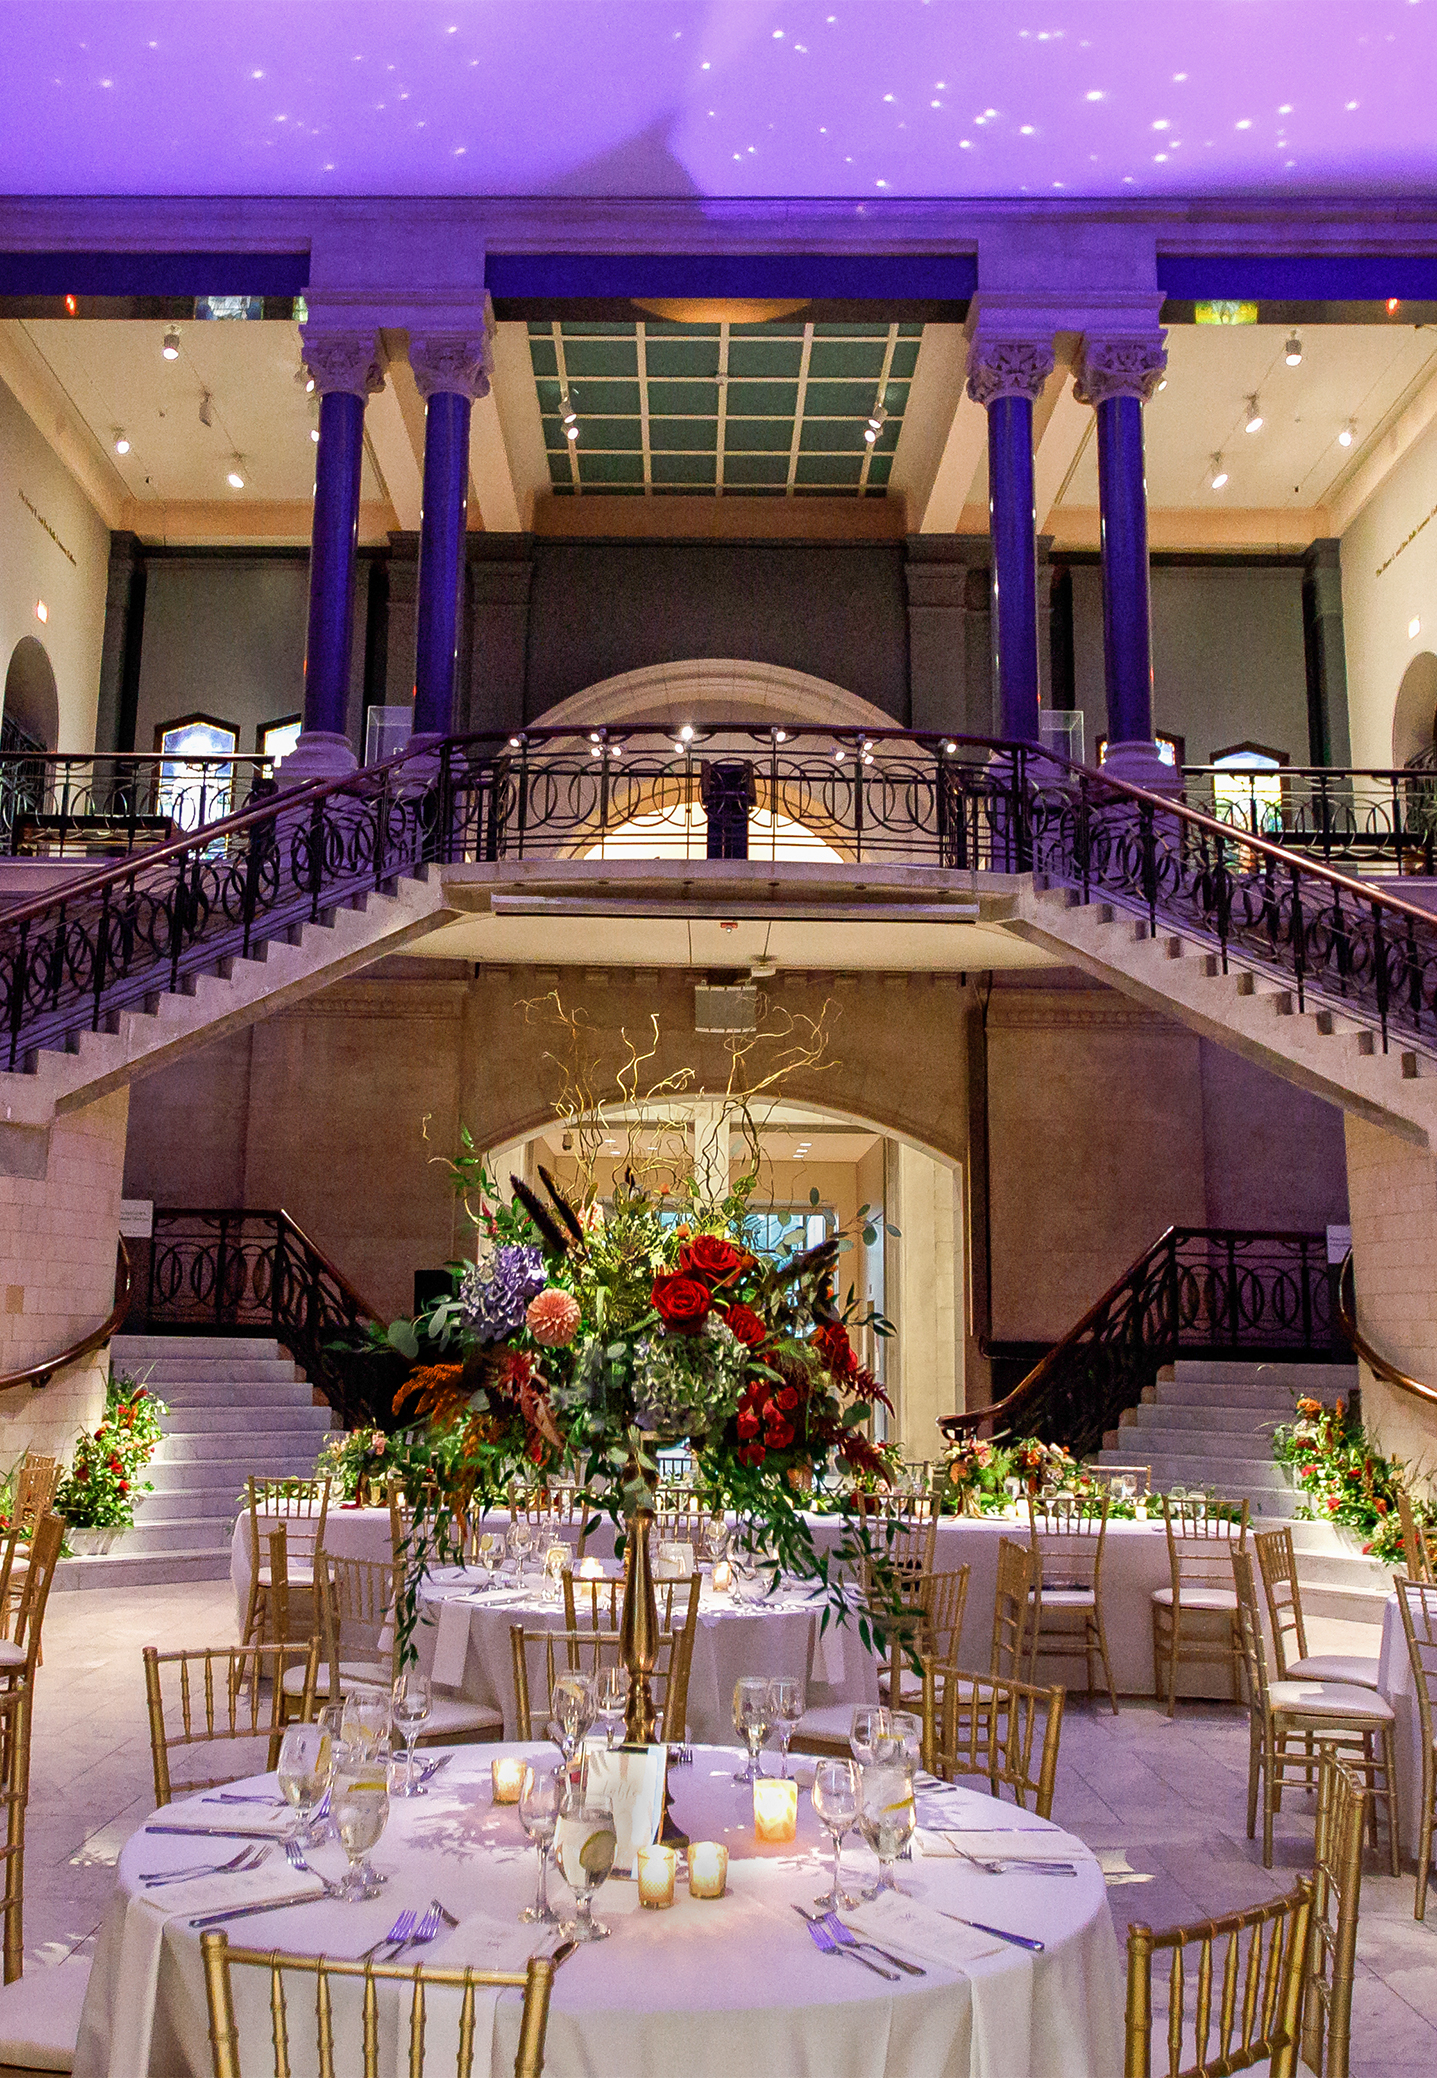 Fall wedding color in striking jewel tone floral tall and low centerpieces creates unique reception decor. Inspiration in fresh flowers and foliage set in the classic atrium architecture of the Cincinnati Art Museum wedding venue.